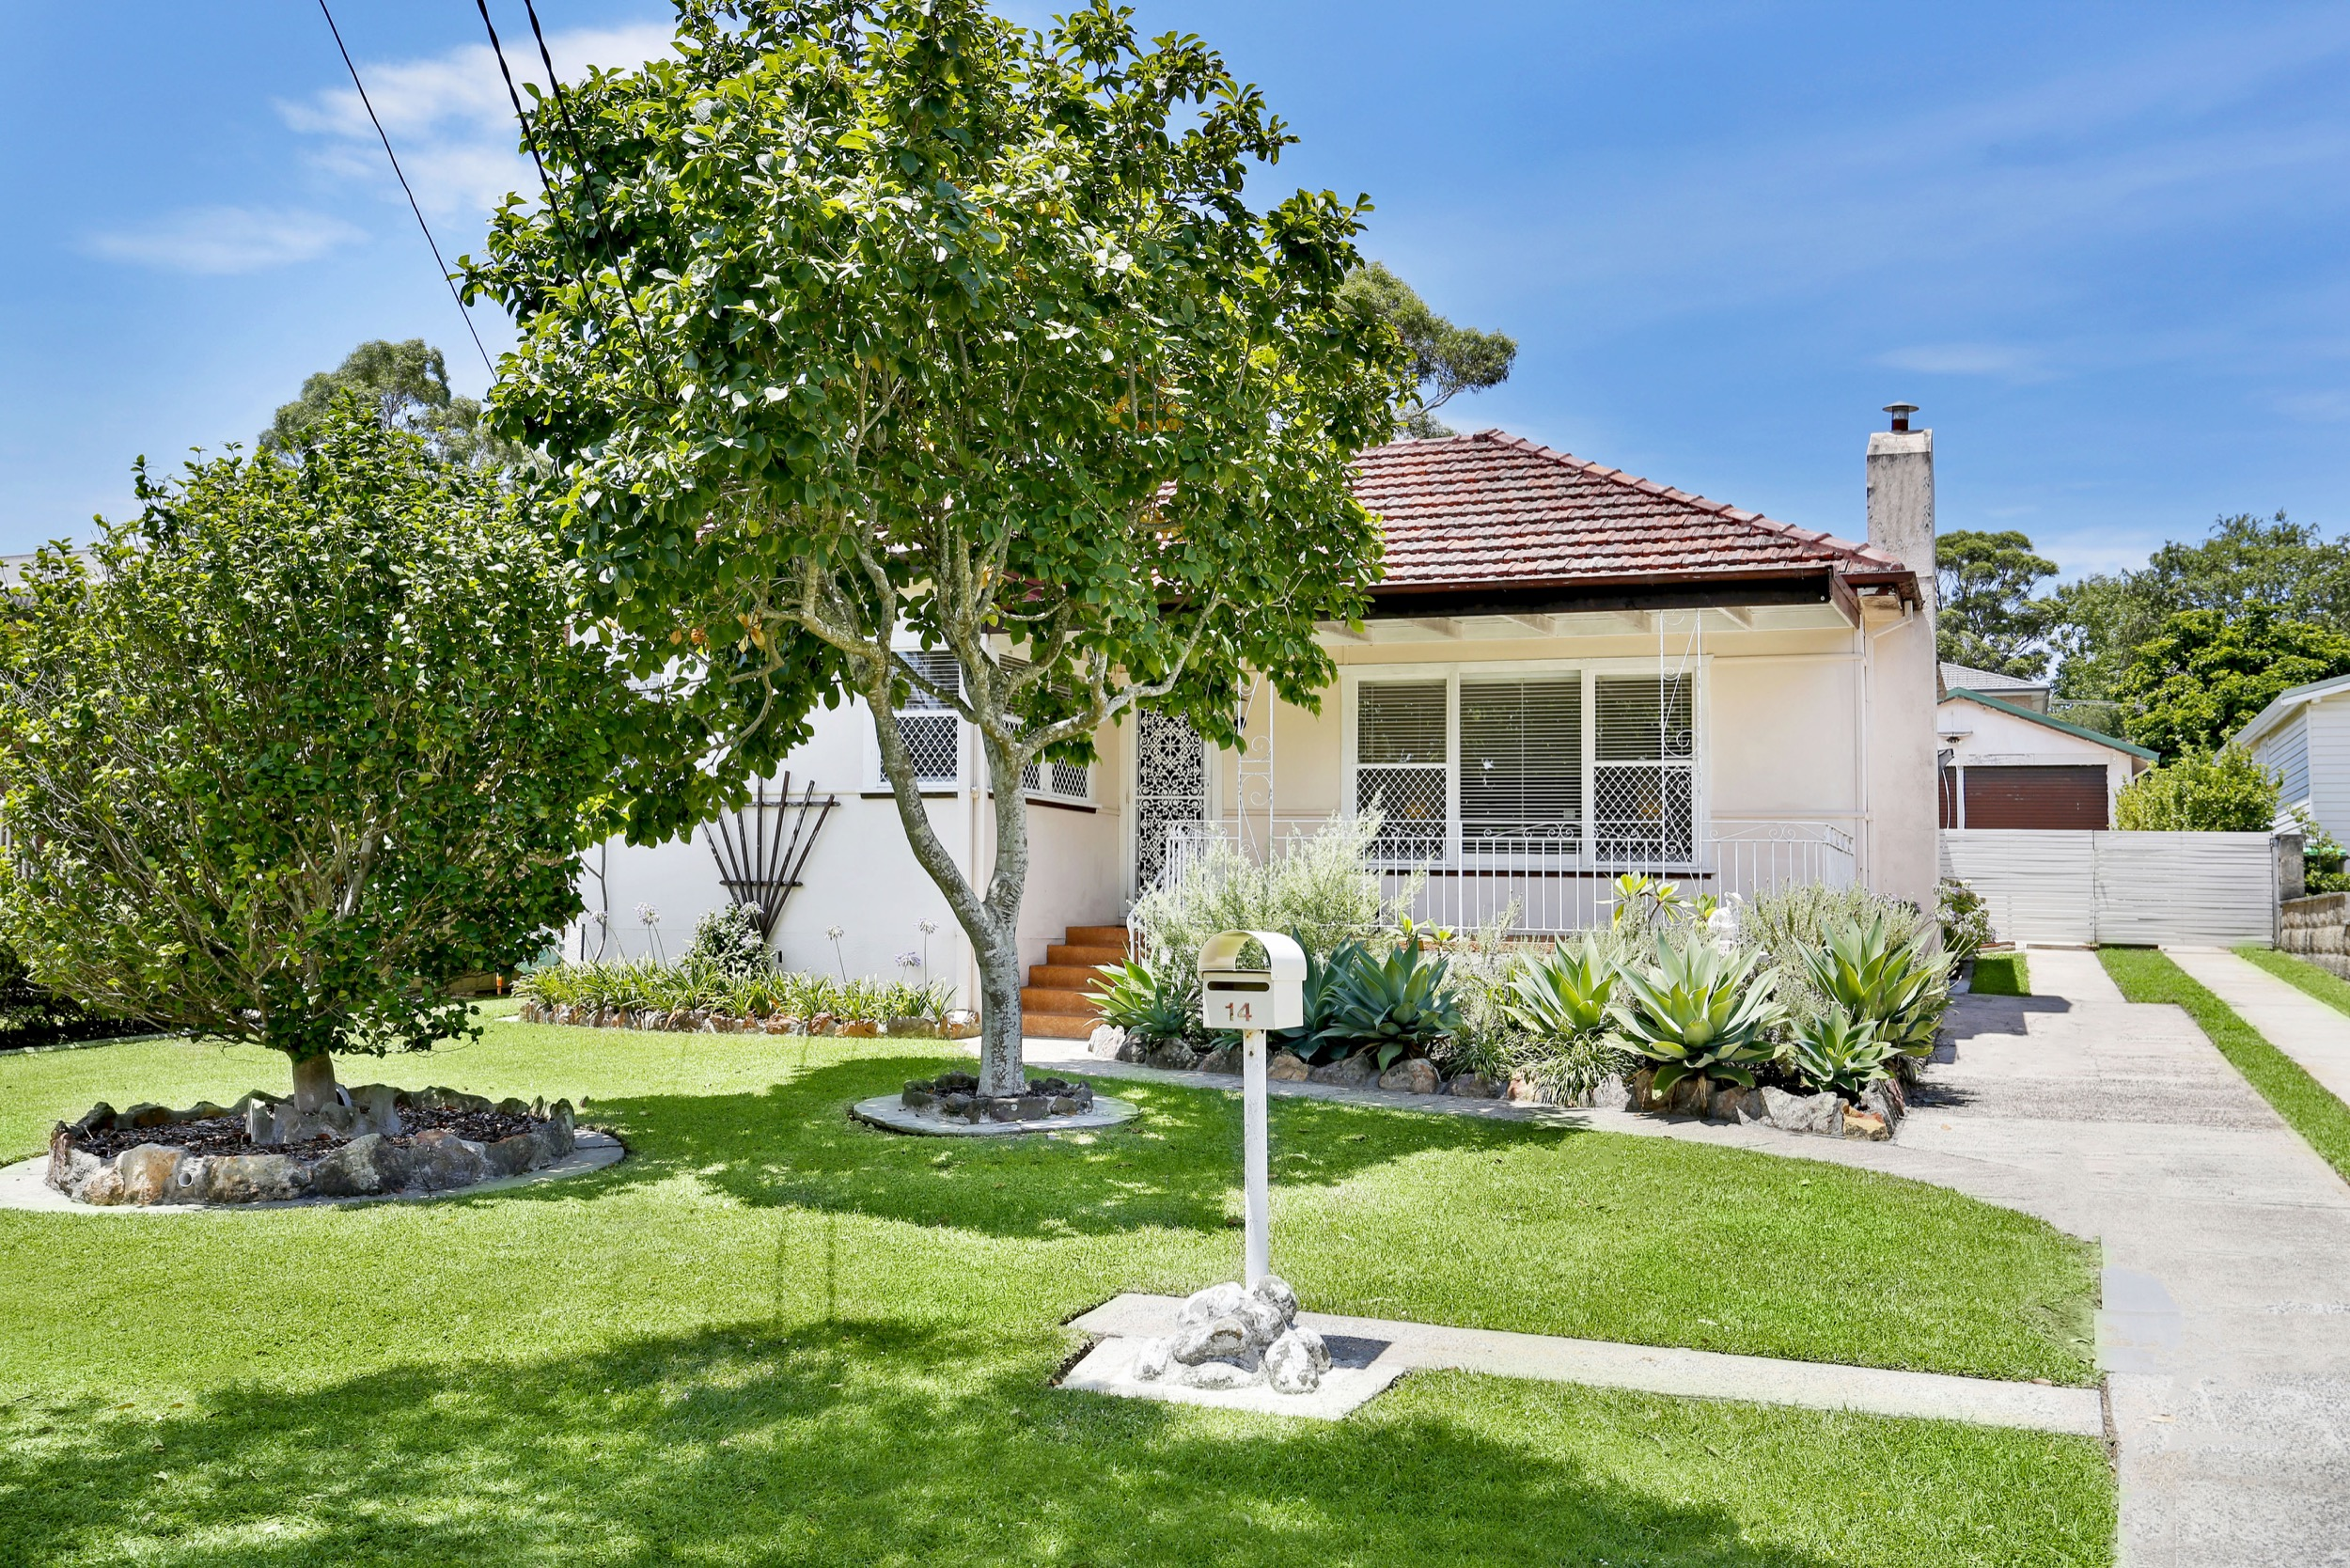 Picture of 14 Binney Street, Caringbah South